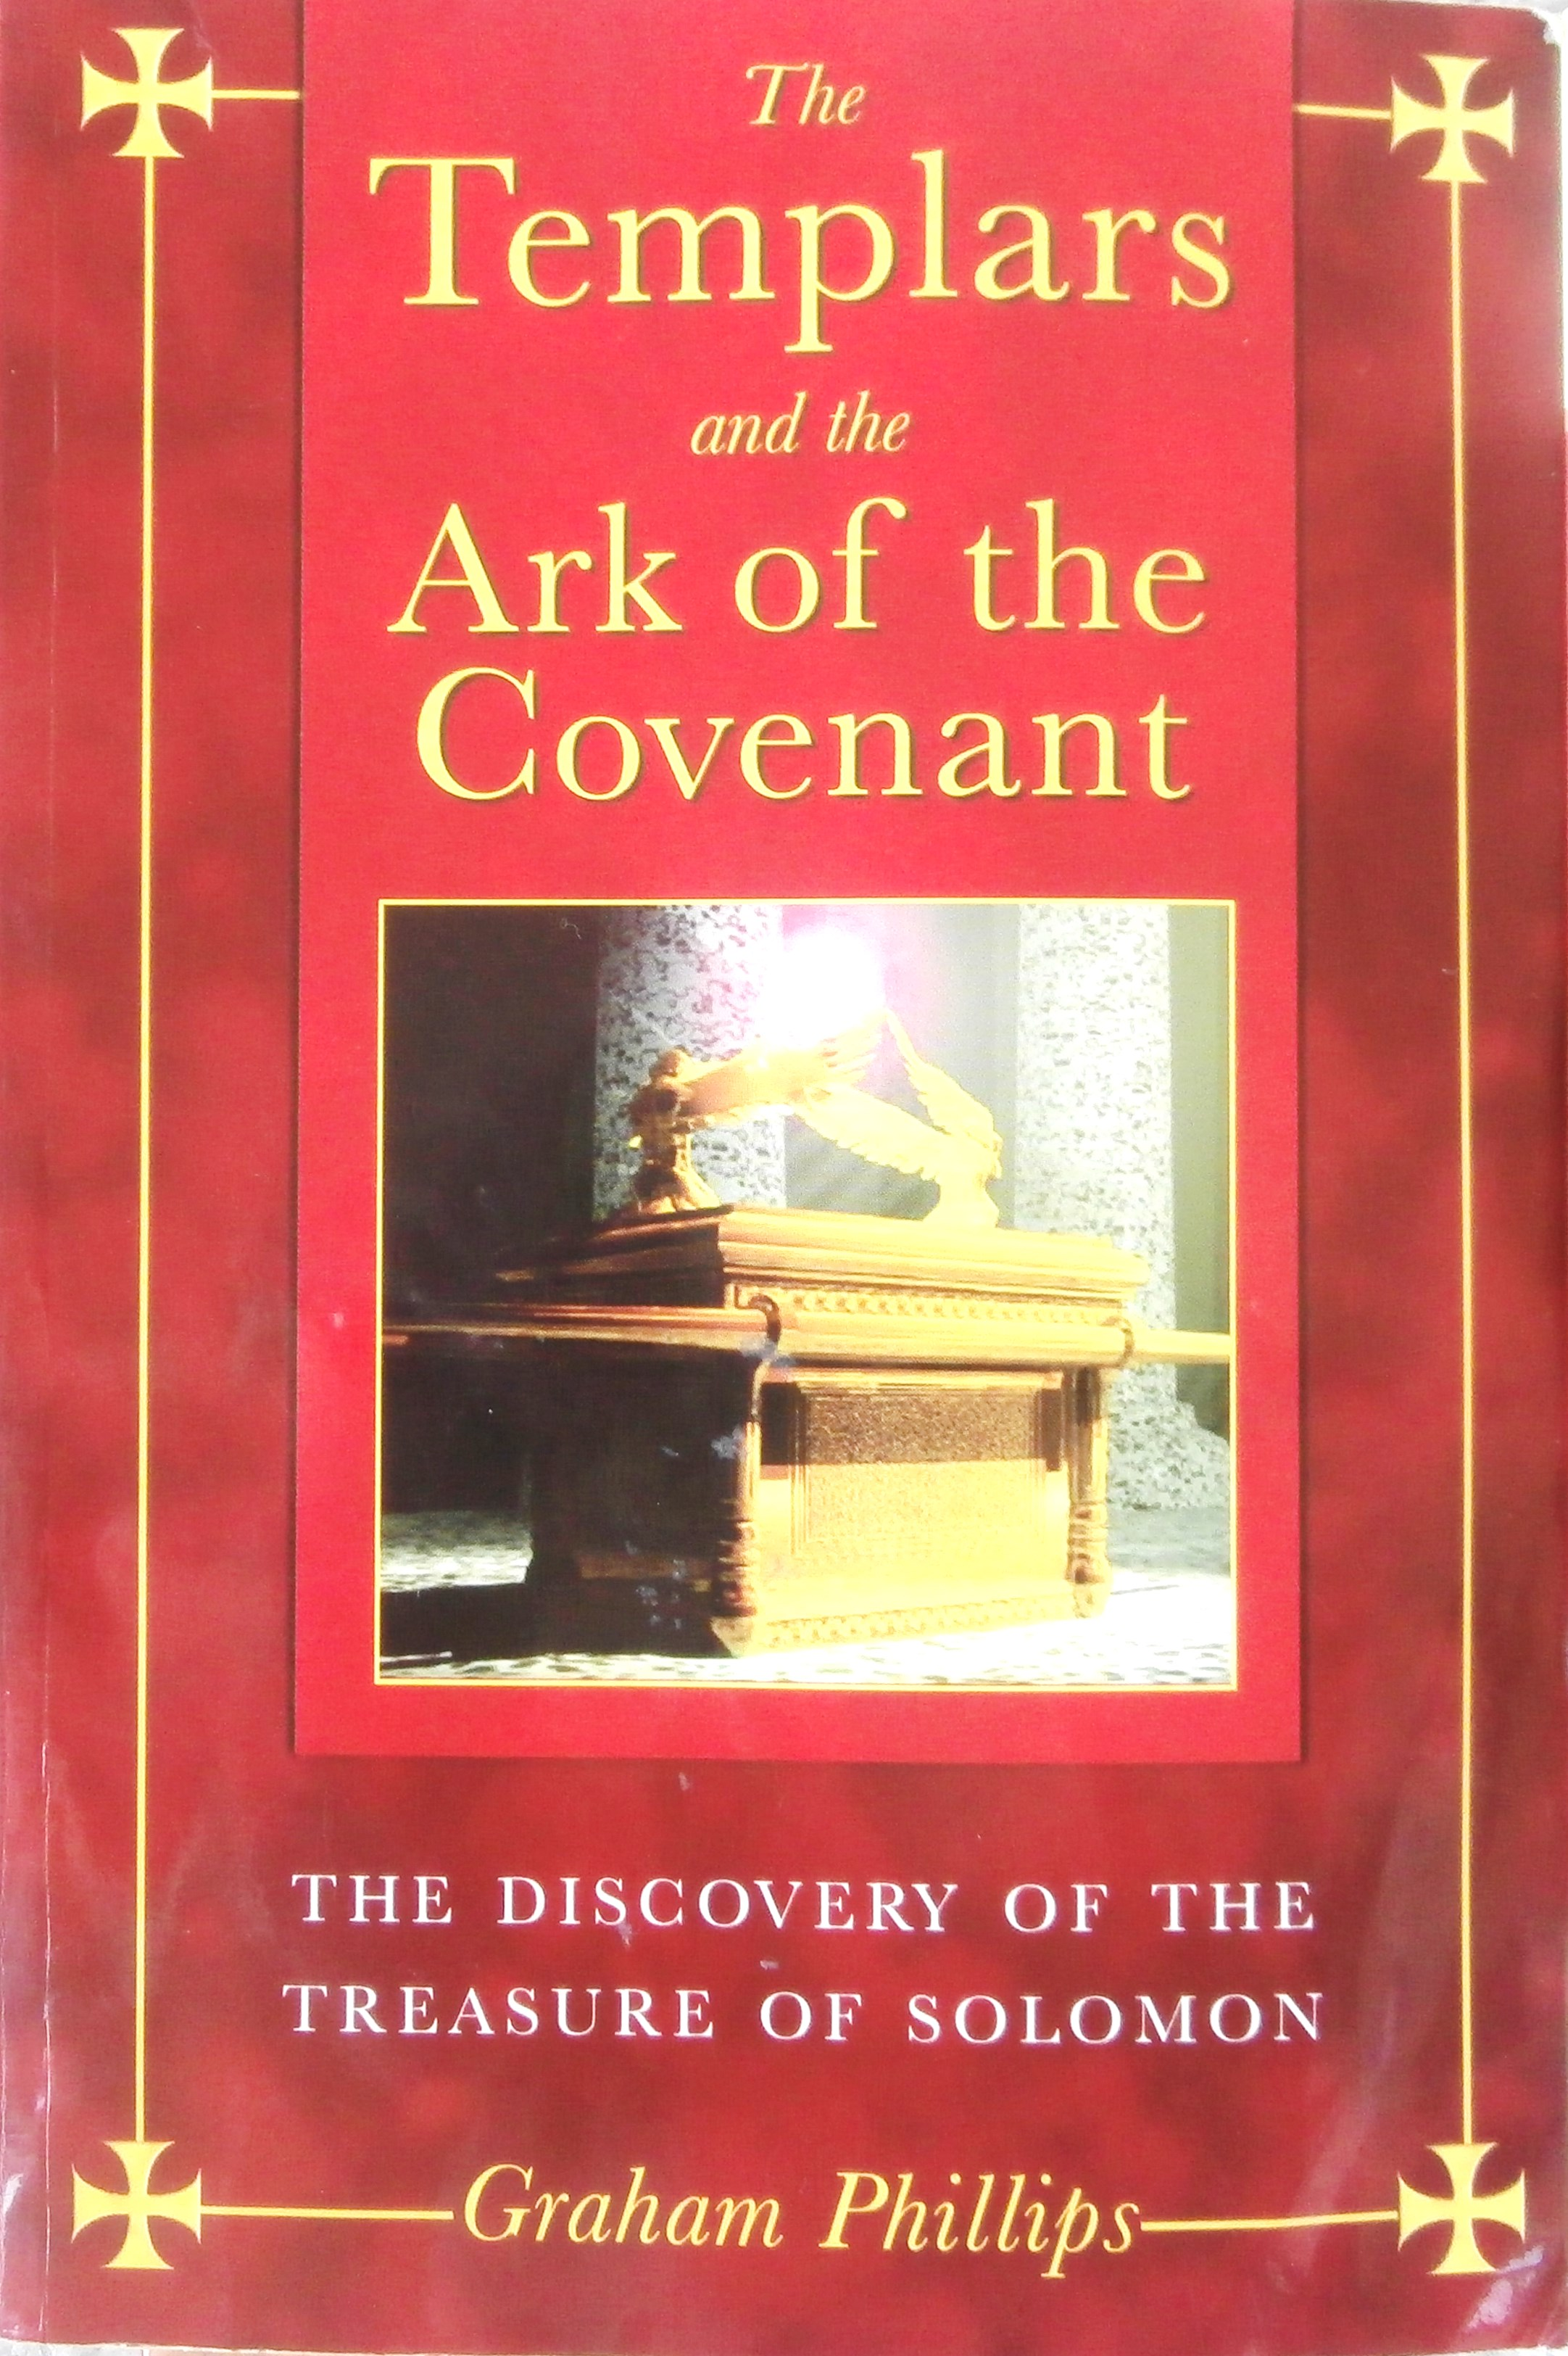 Graham Phillips The Templars and the Ark of the Covenant